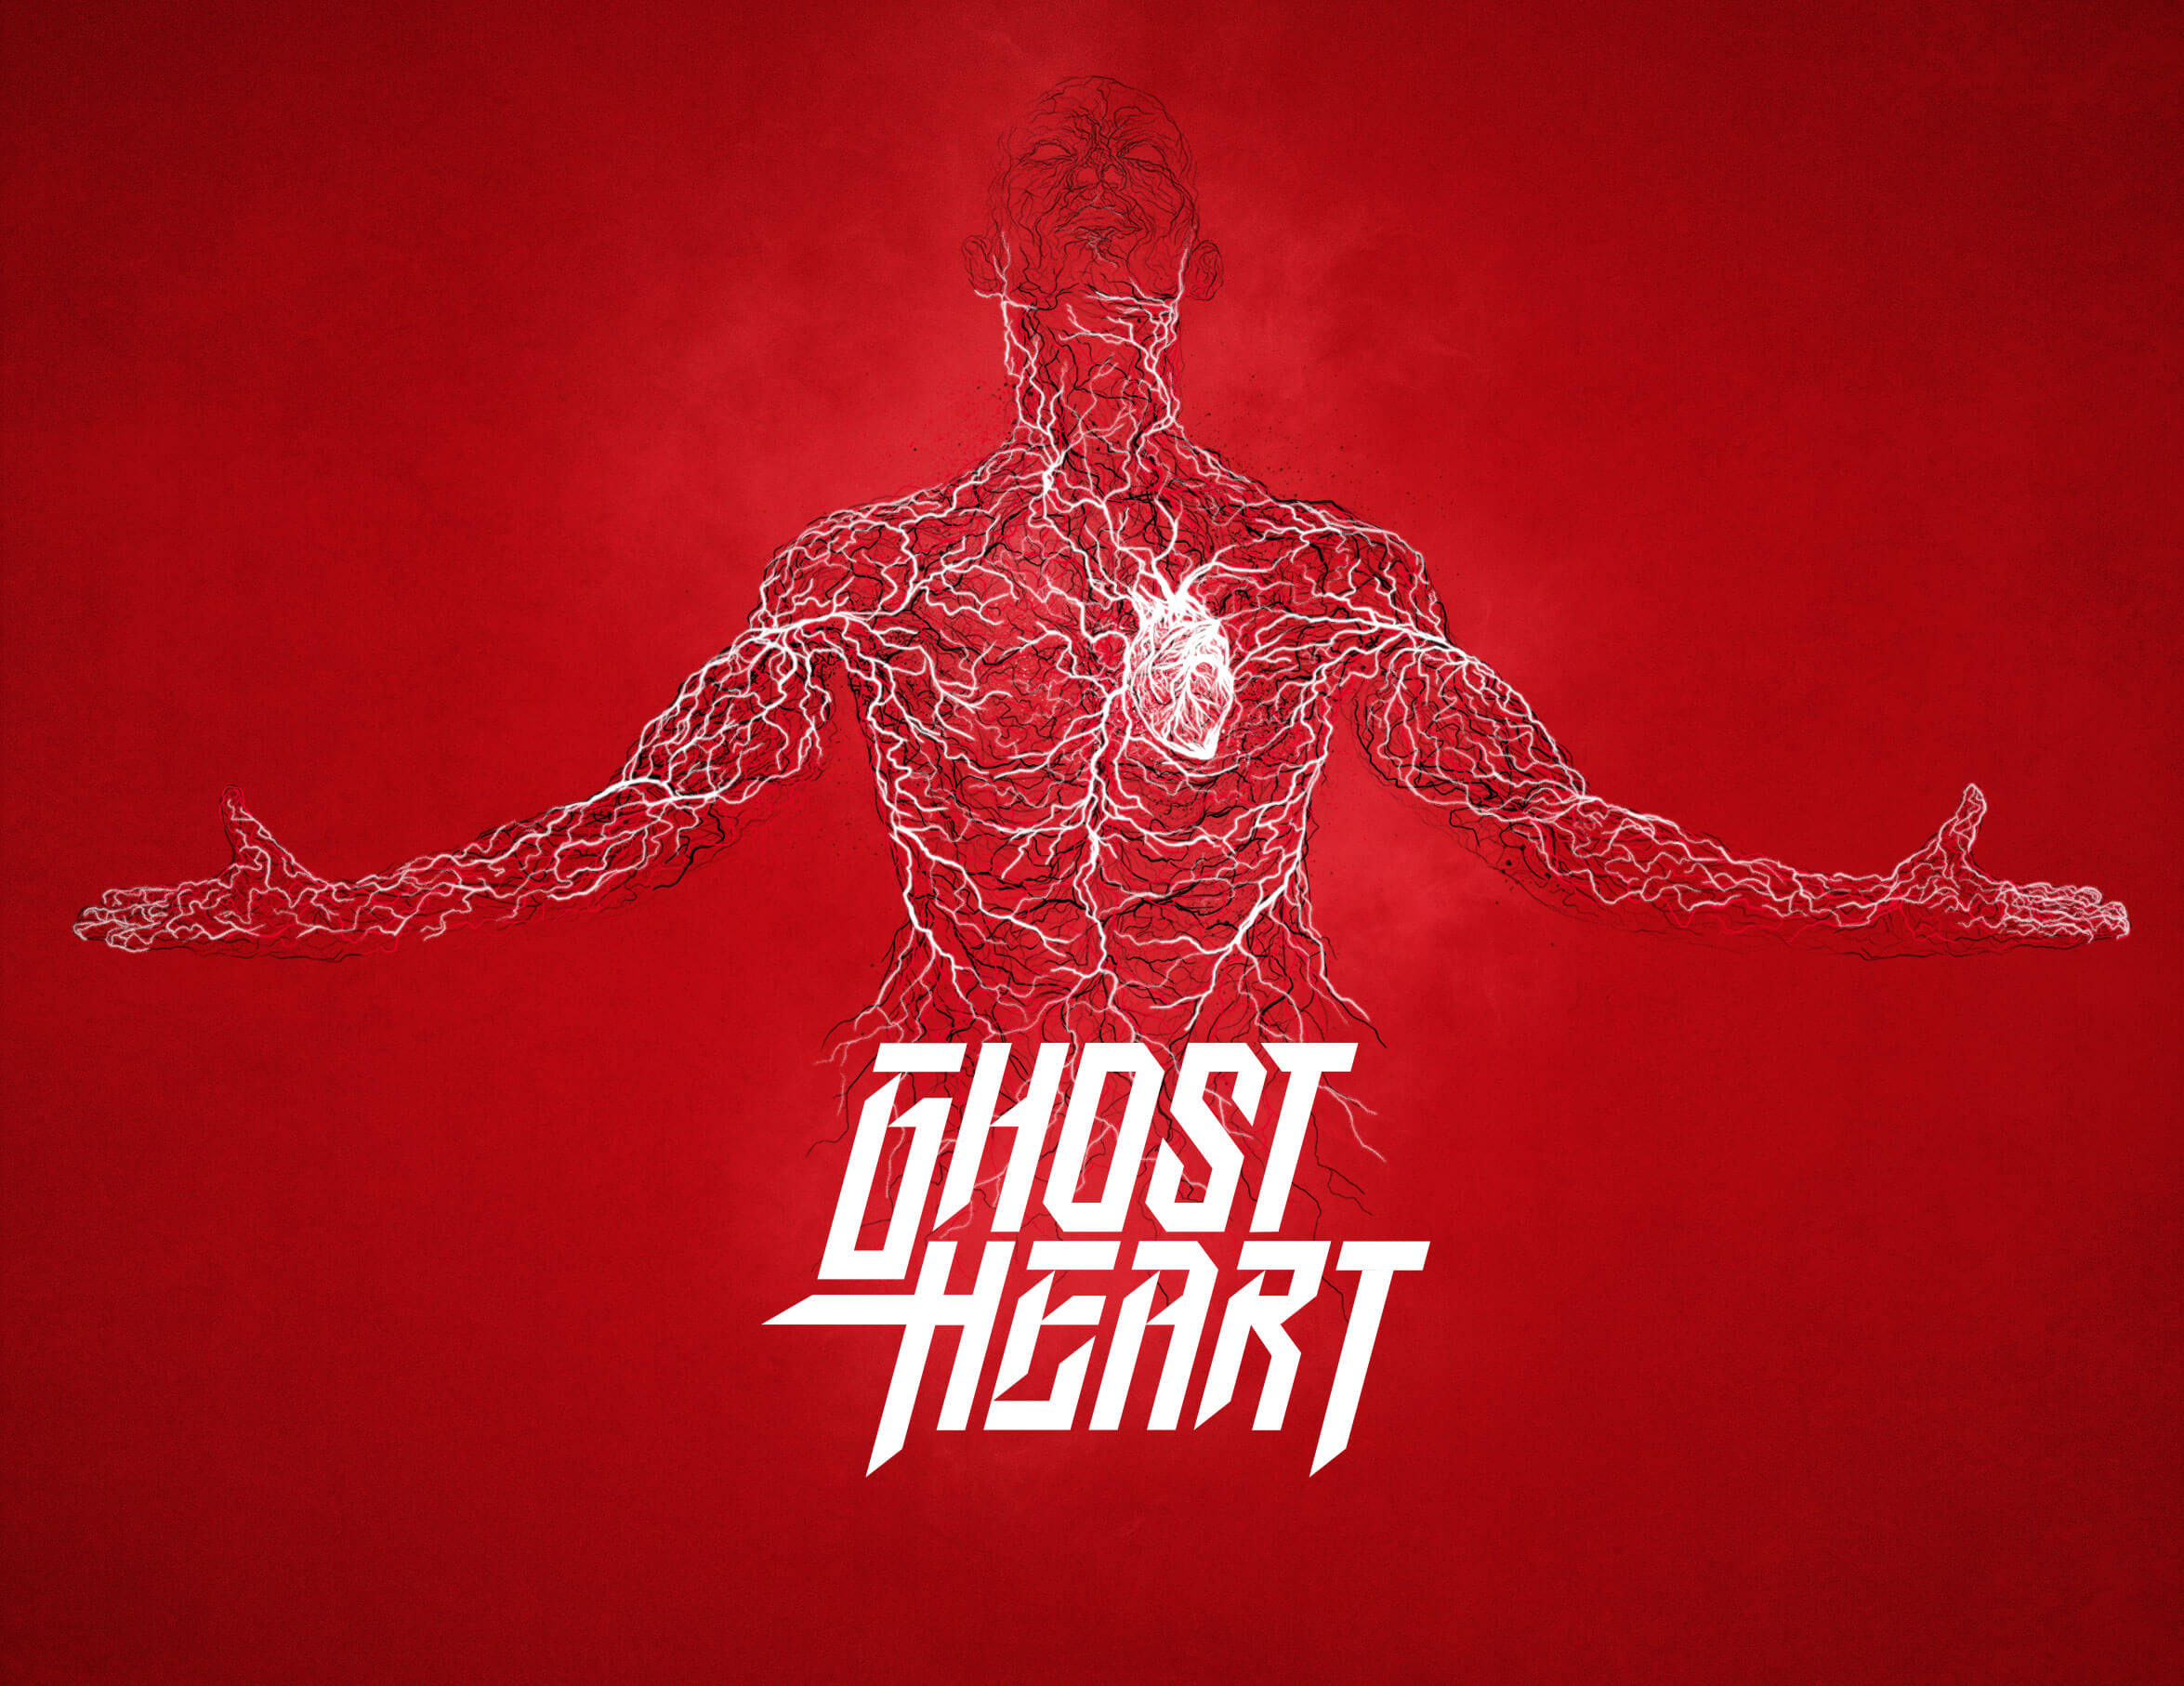 ghost-heart-new-forest-film-co-2350x1814.jpg